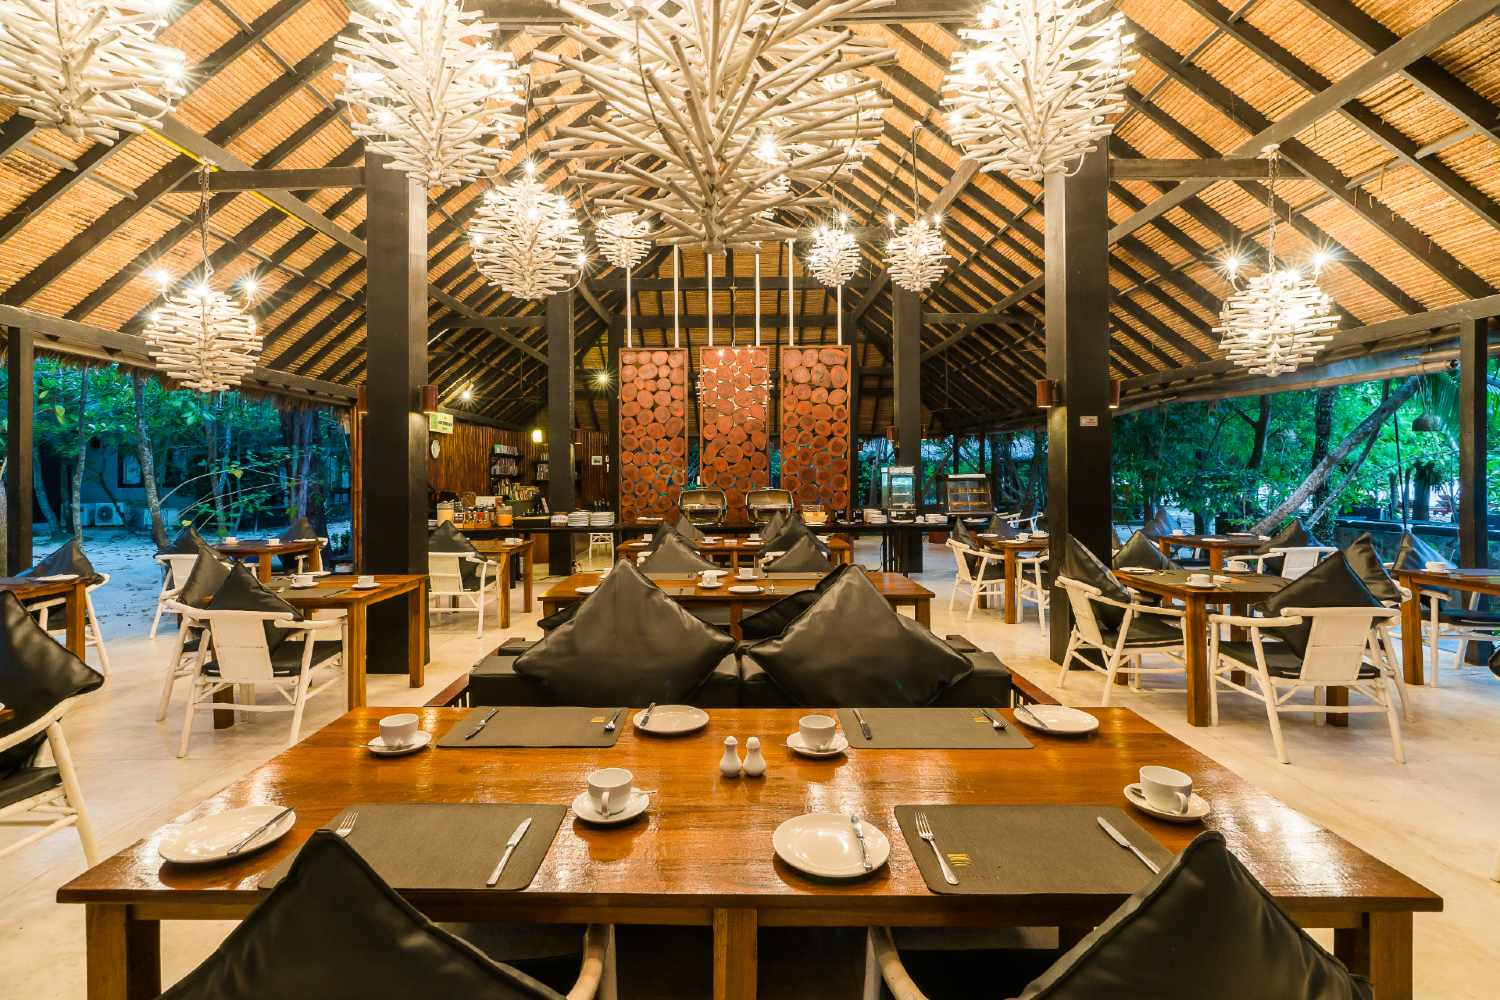 The Sevenseas Restaurant op Koh Kradan in Thailand